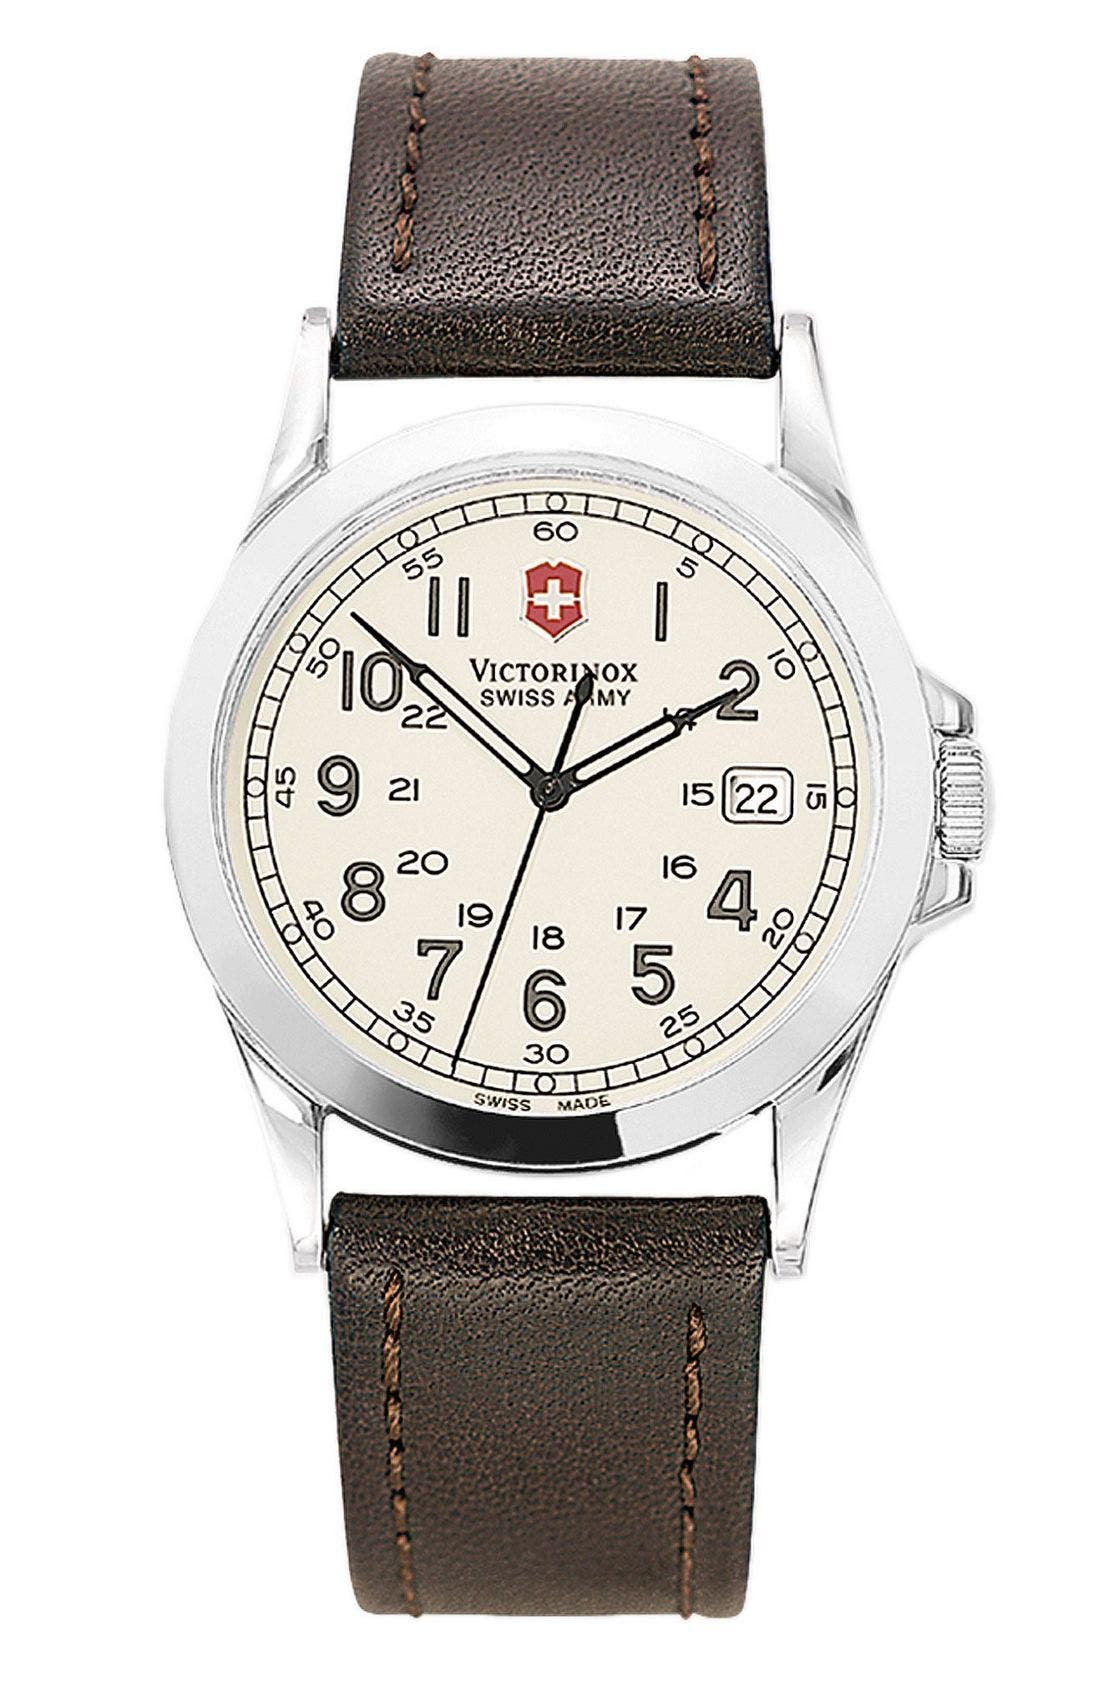 Alternate Image 1 Selected - Victorinox Swiss Army® 'Infantry' 38mm Watch with Leather Band